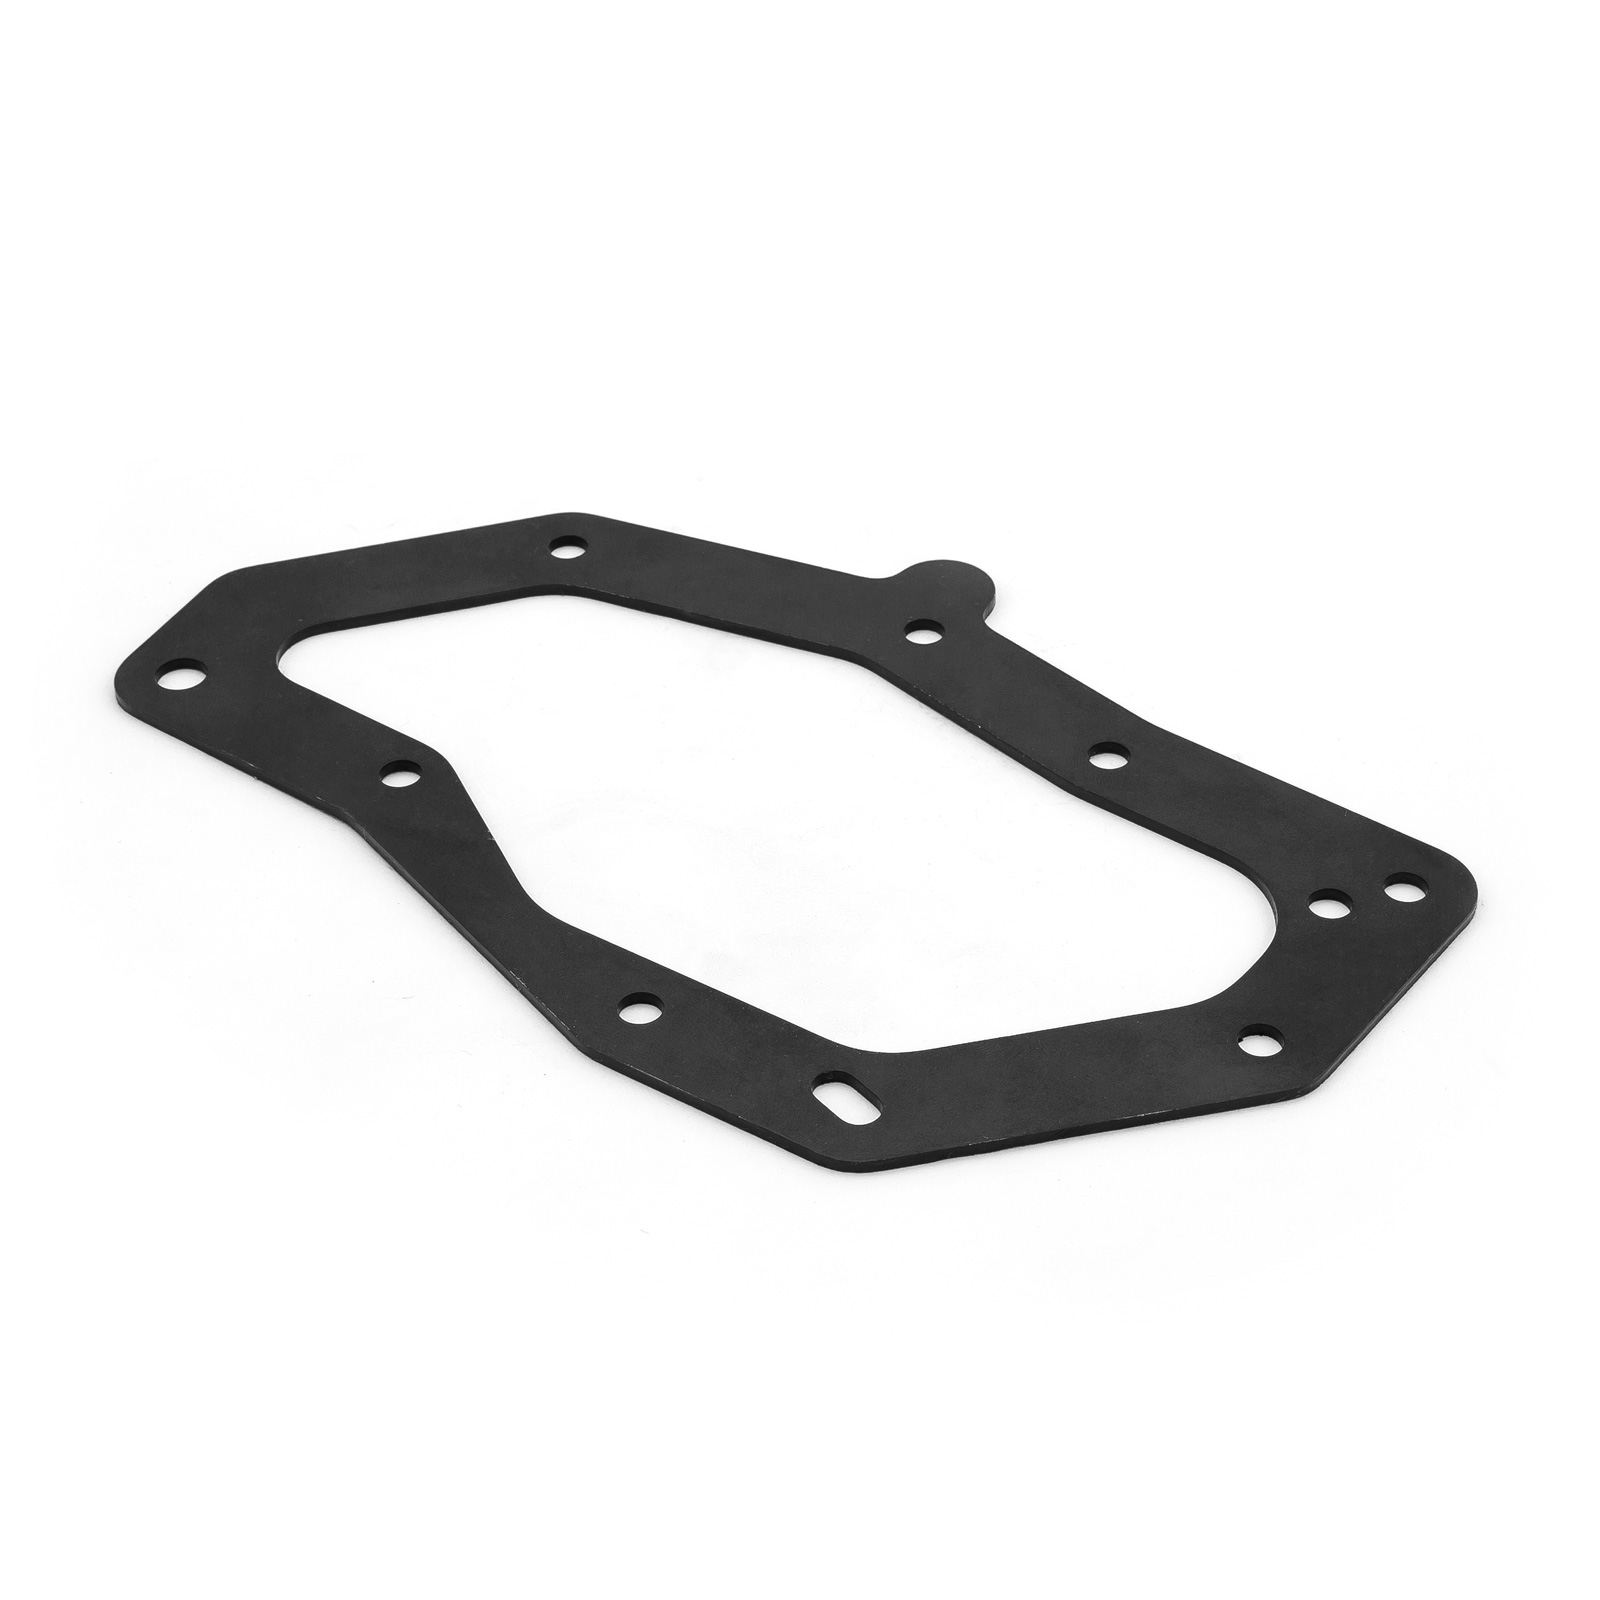 PCE® PCE672.1001 Ford C4 Transmission Filter Gasket 2mm Thick